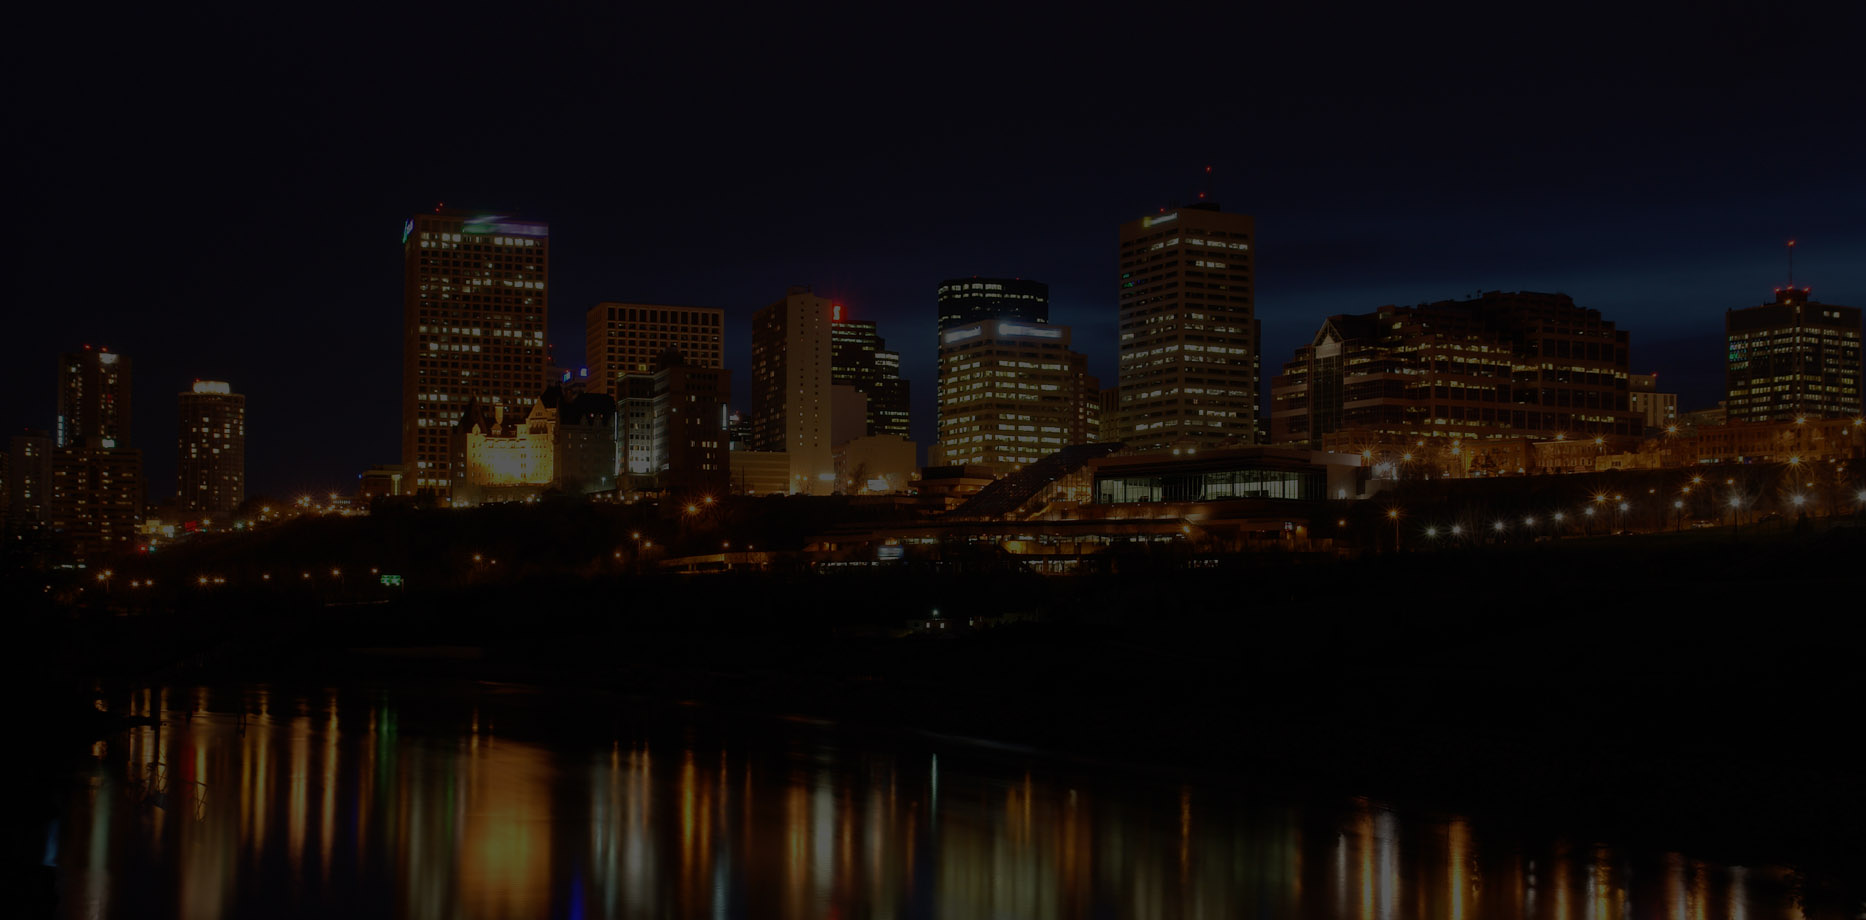 Edmonton's skyline at night